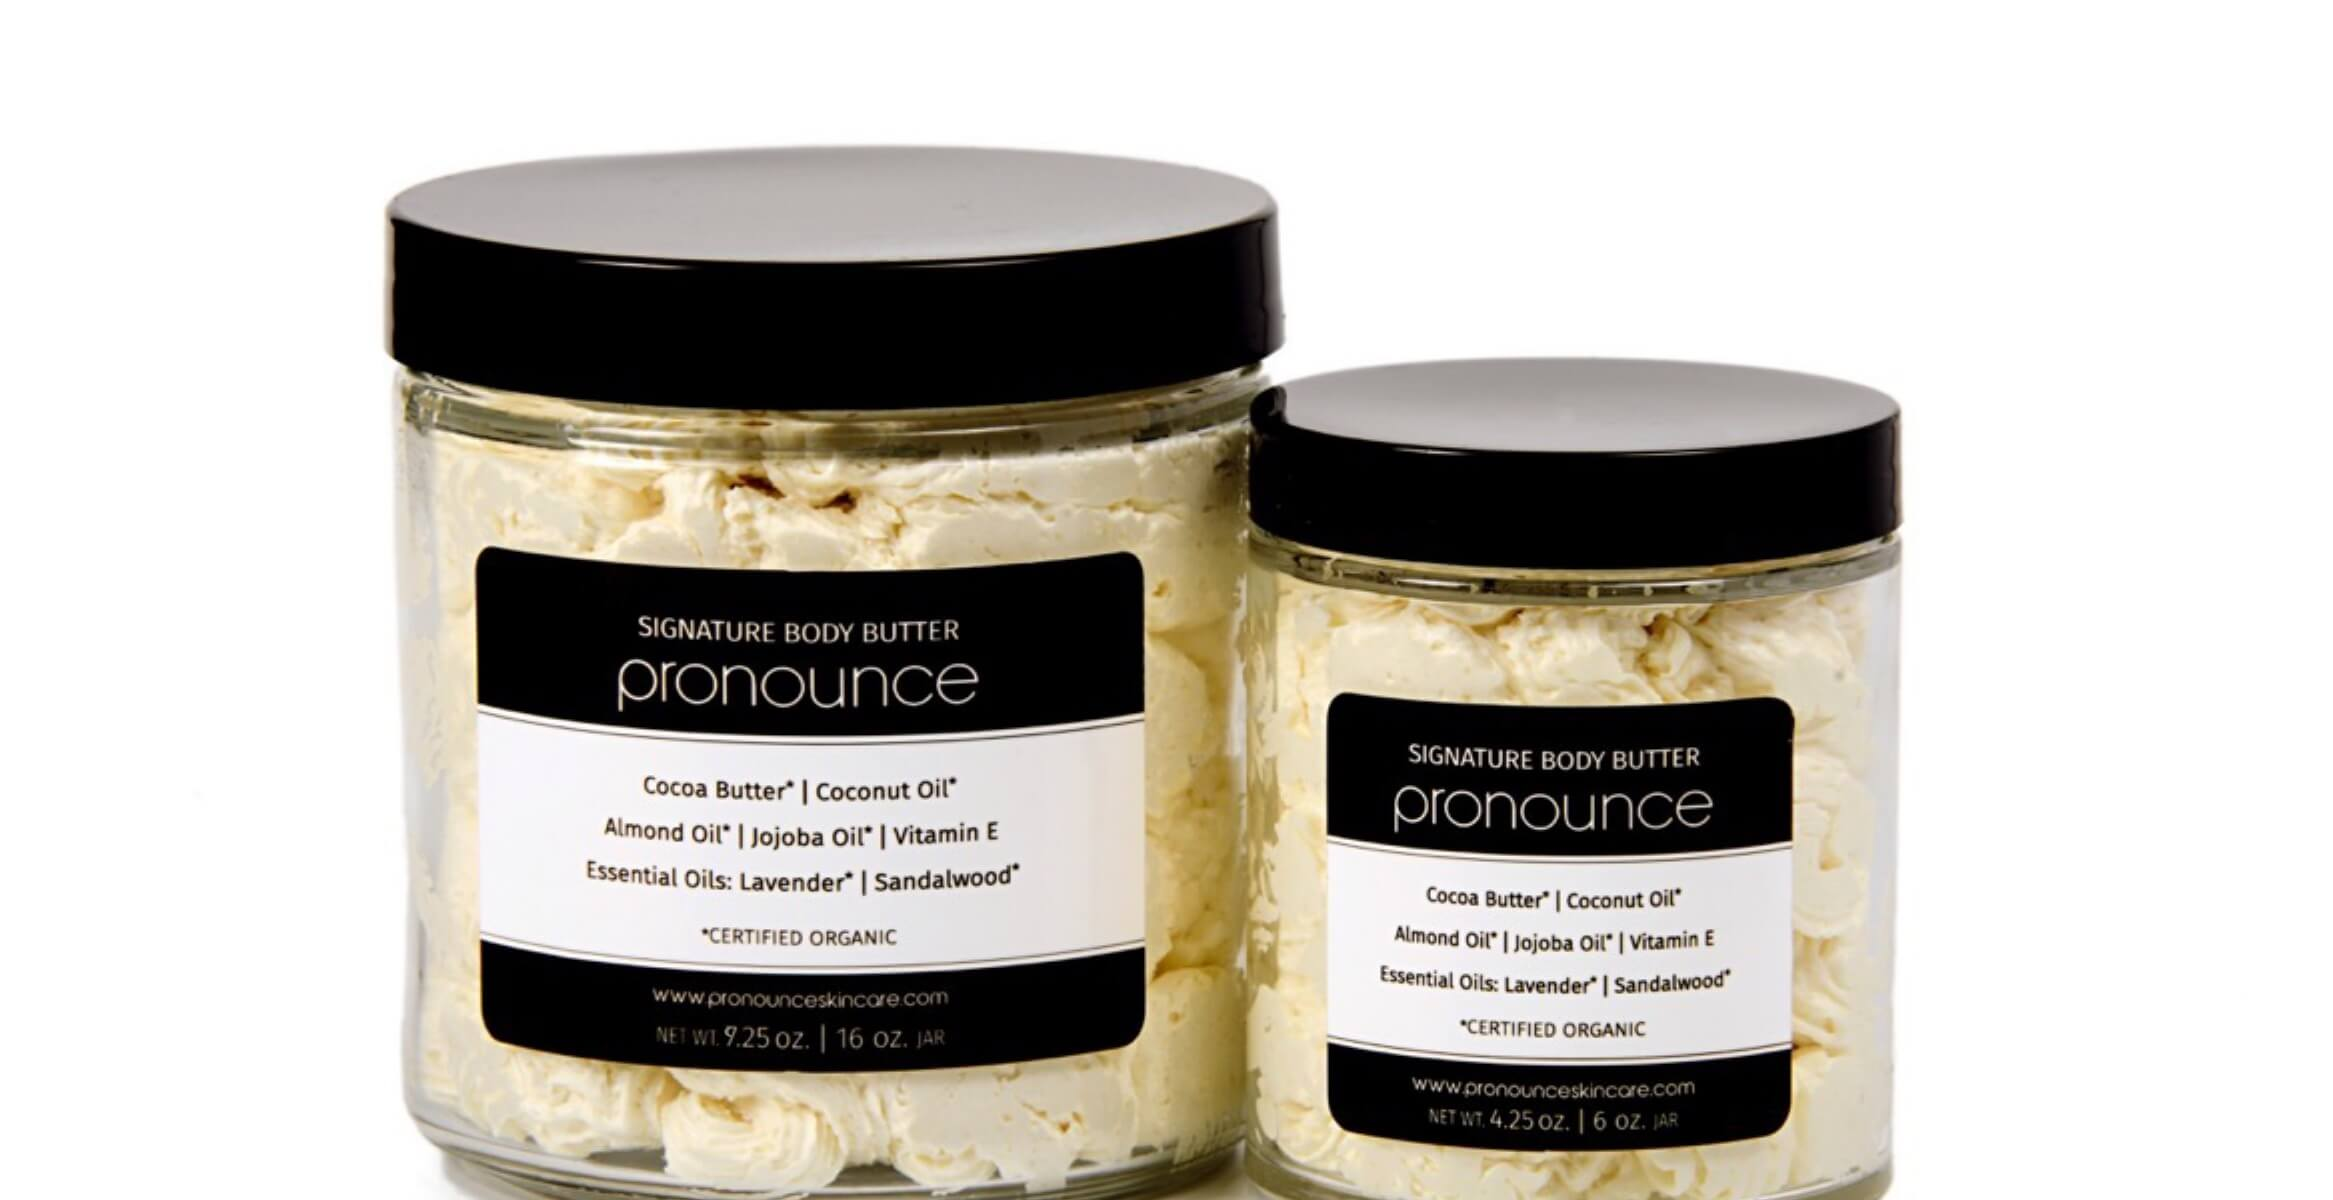 Signature Body Butters 2 sizes | Pronounce Skincare & Herbal Boutique